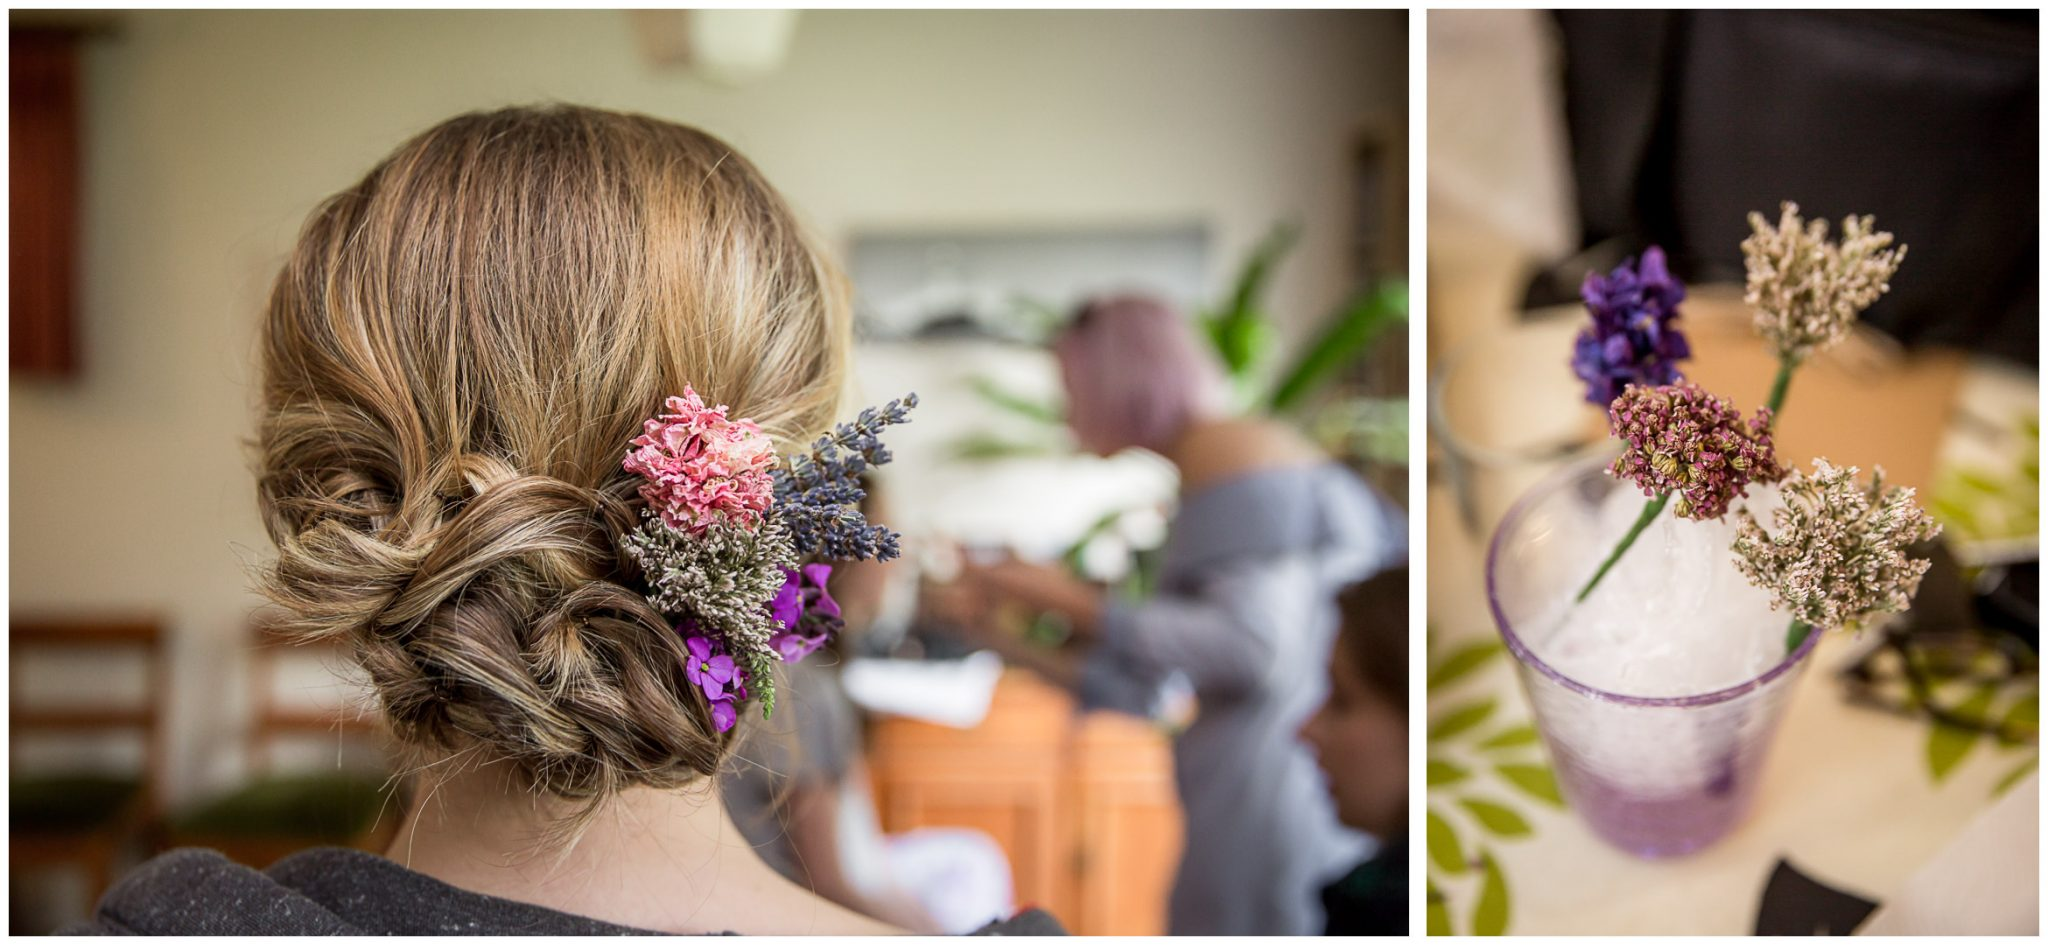 Timsbury Manor Festival Wedding floral details in hair